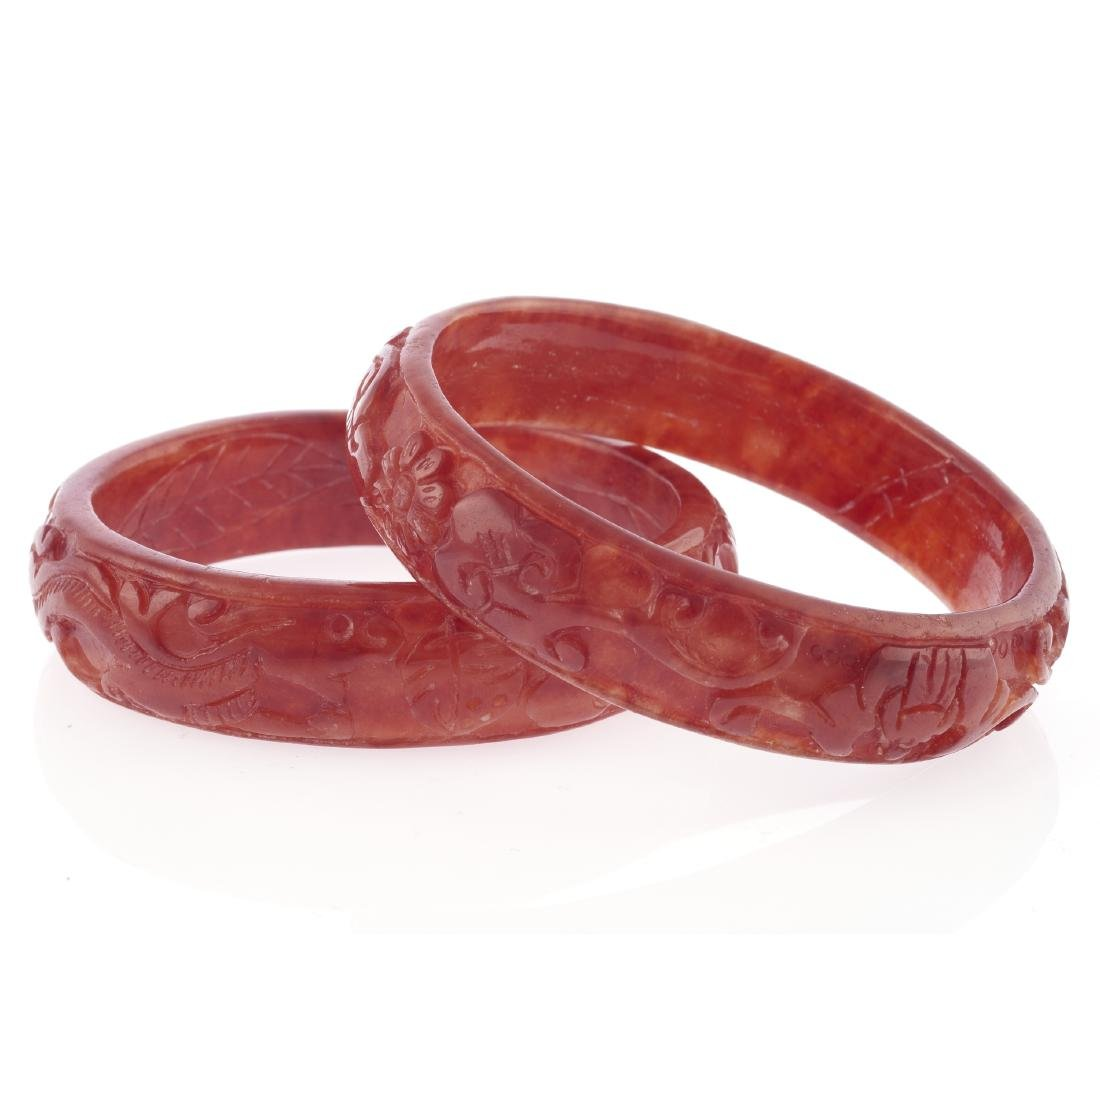 A collection of two carved jade bangle bracelets